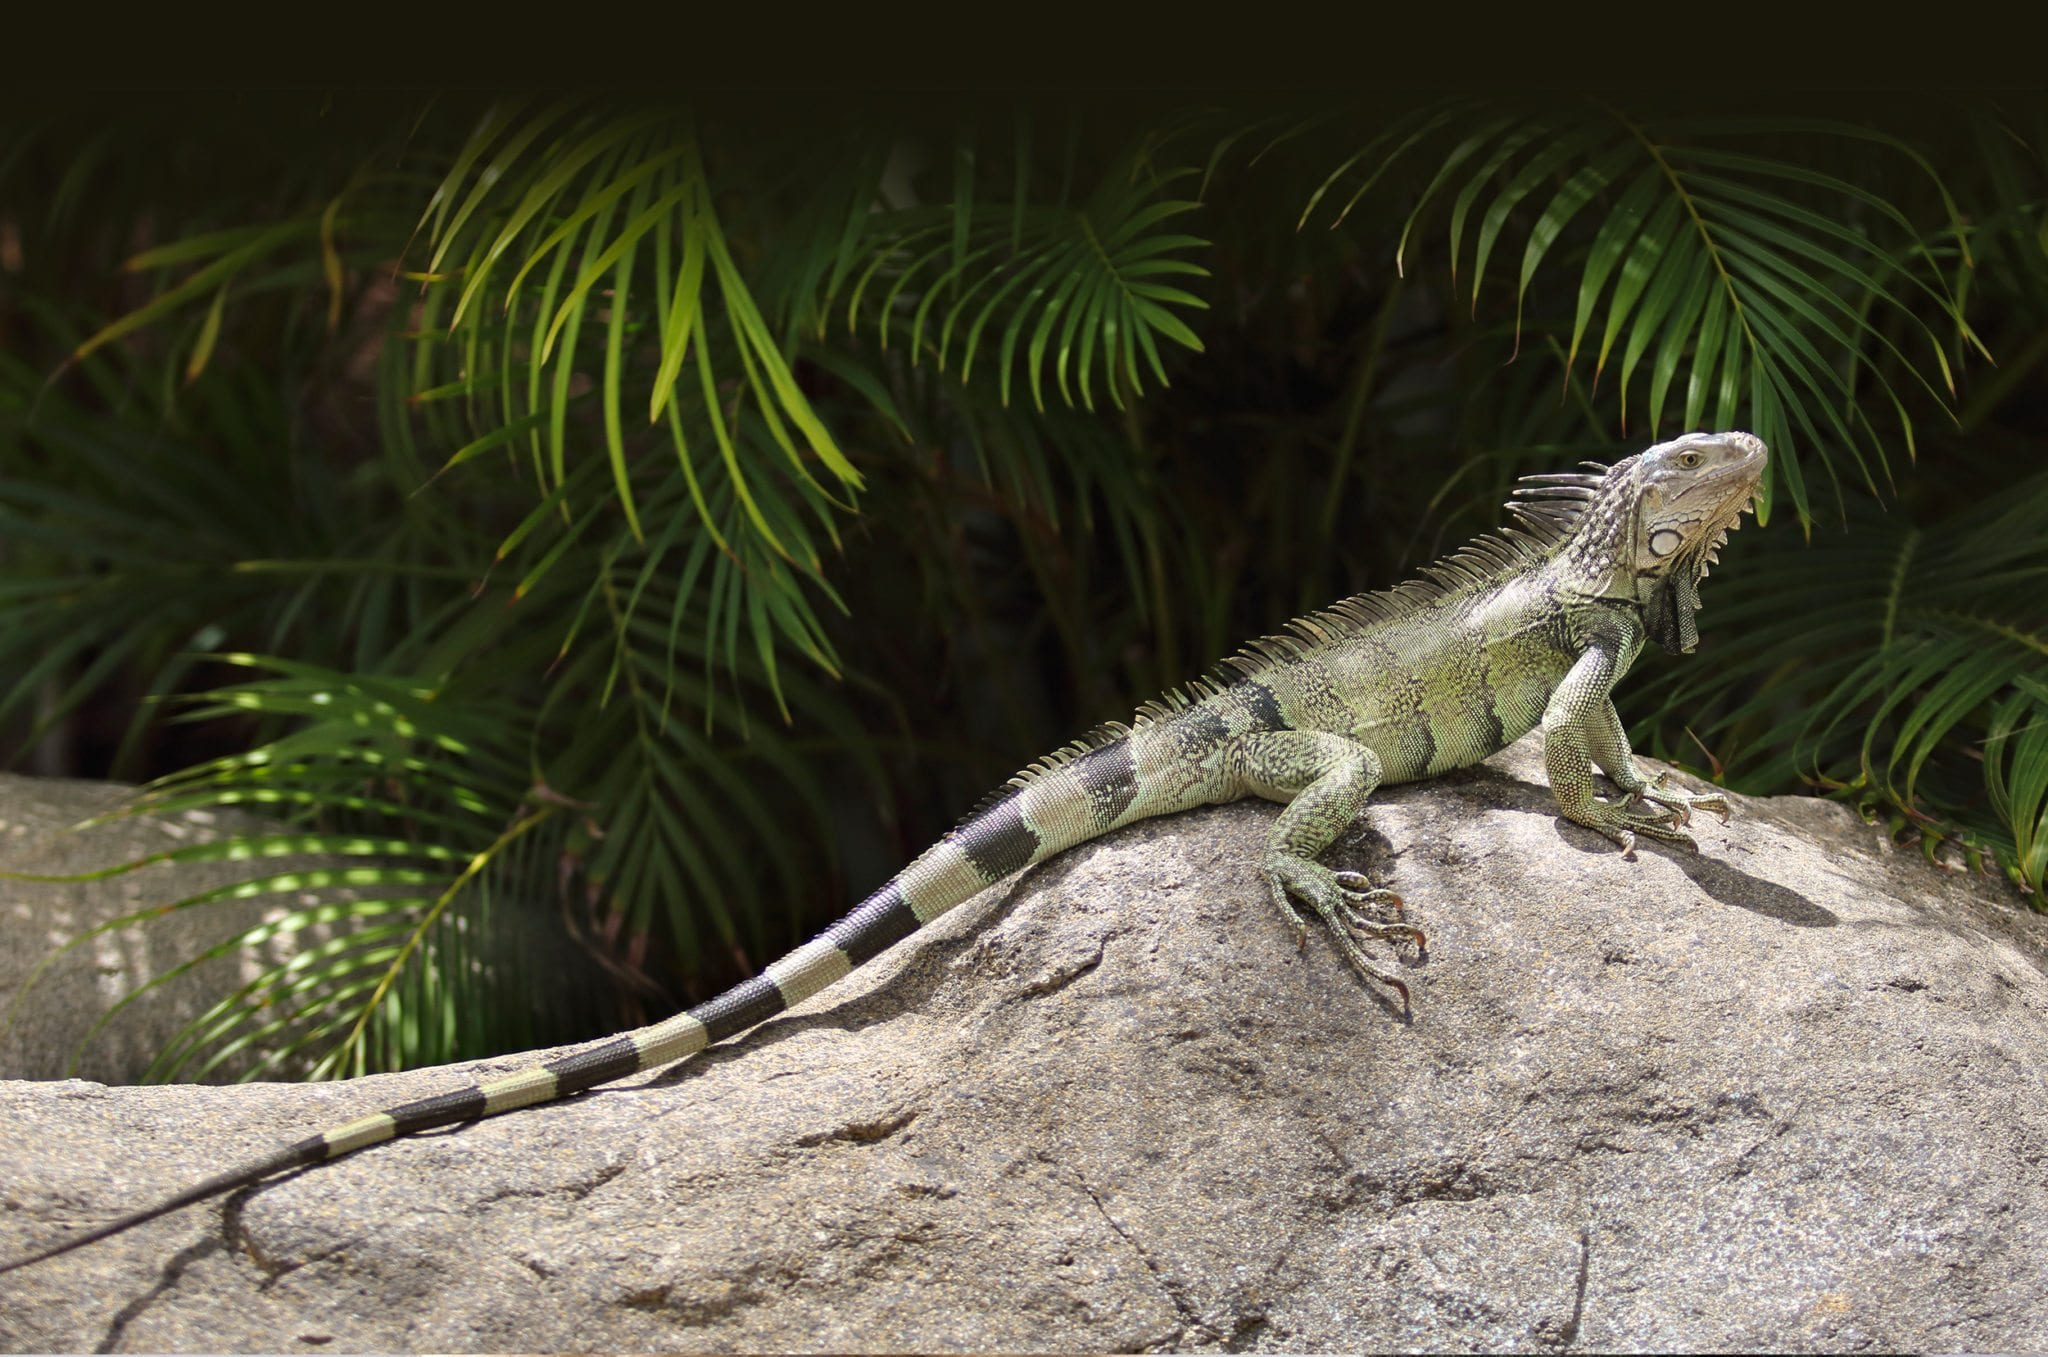 lizard sitting on a rock